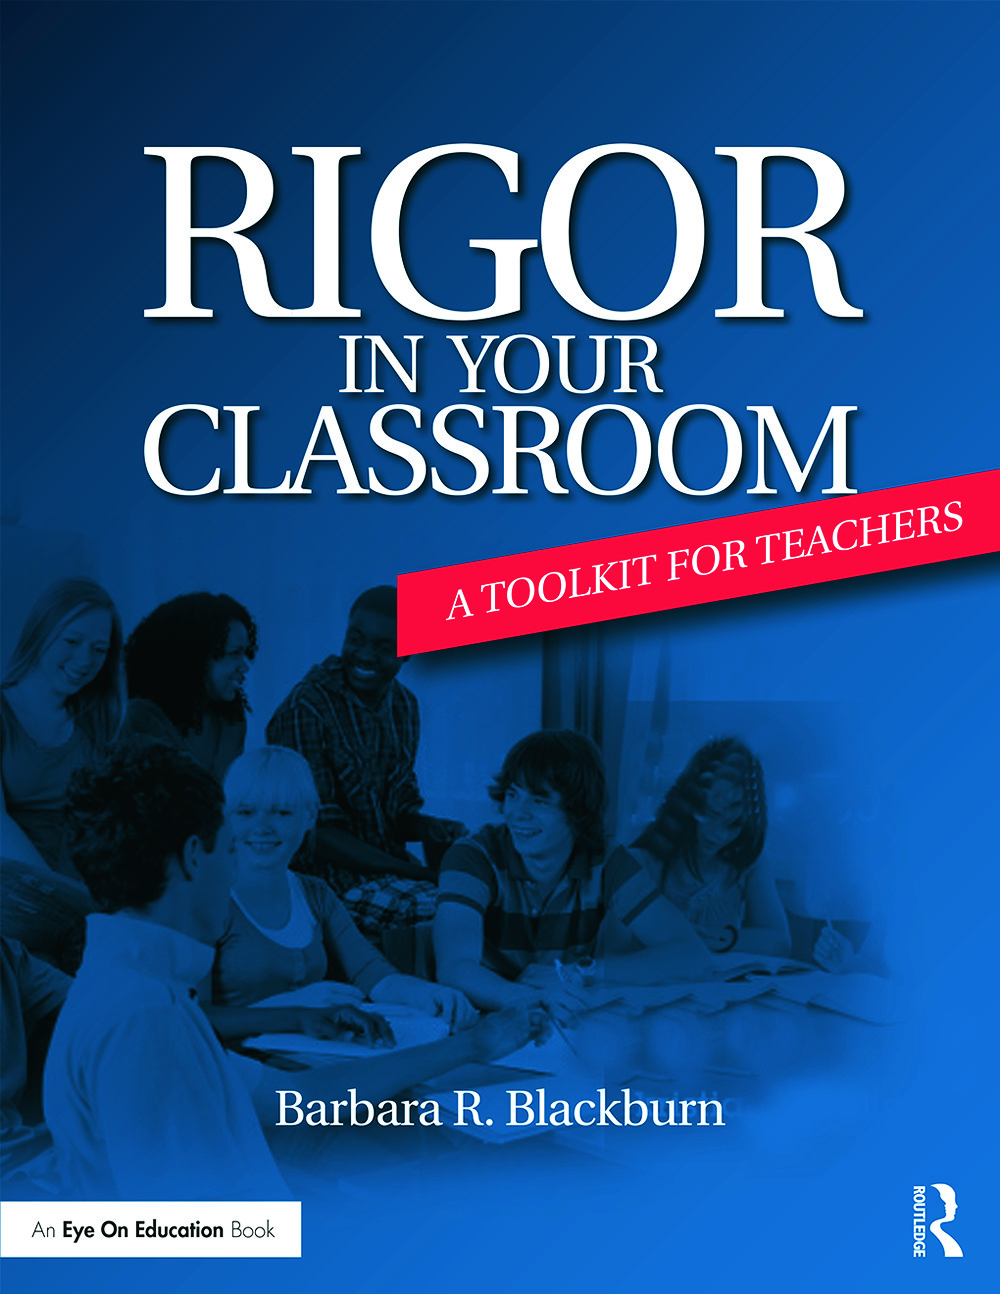 Rigor in Your Classroom: A Toolkit for Teachers (Paperback) book cover